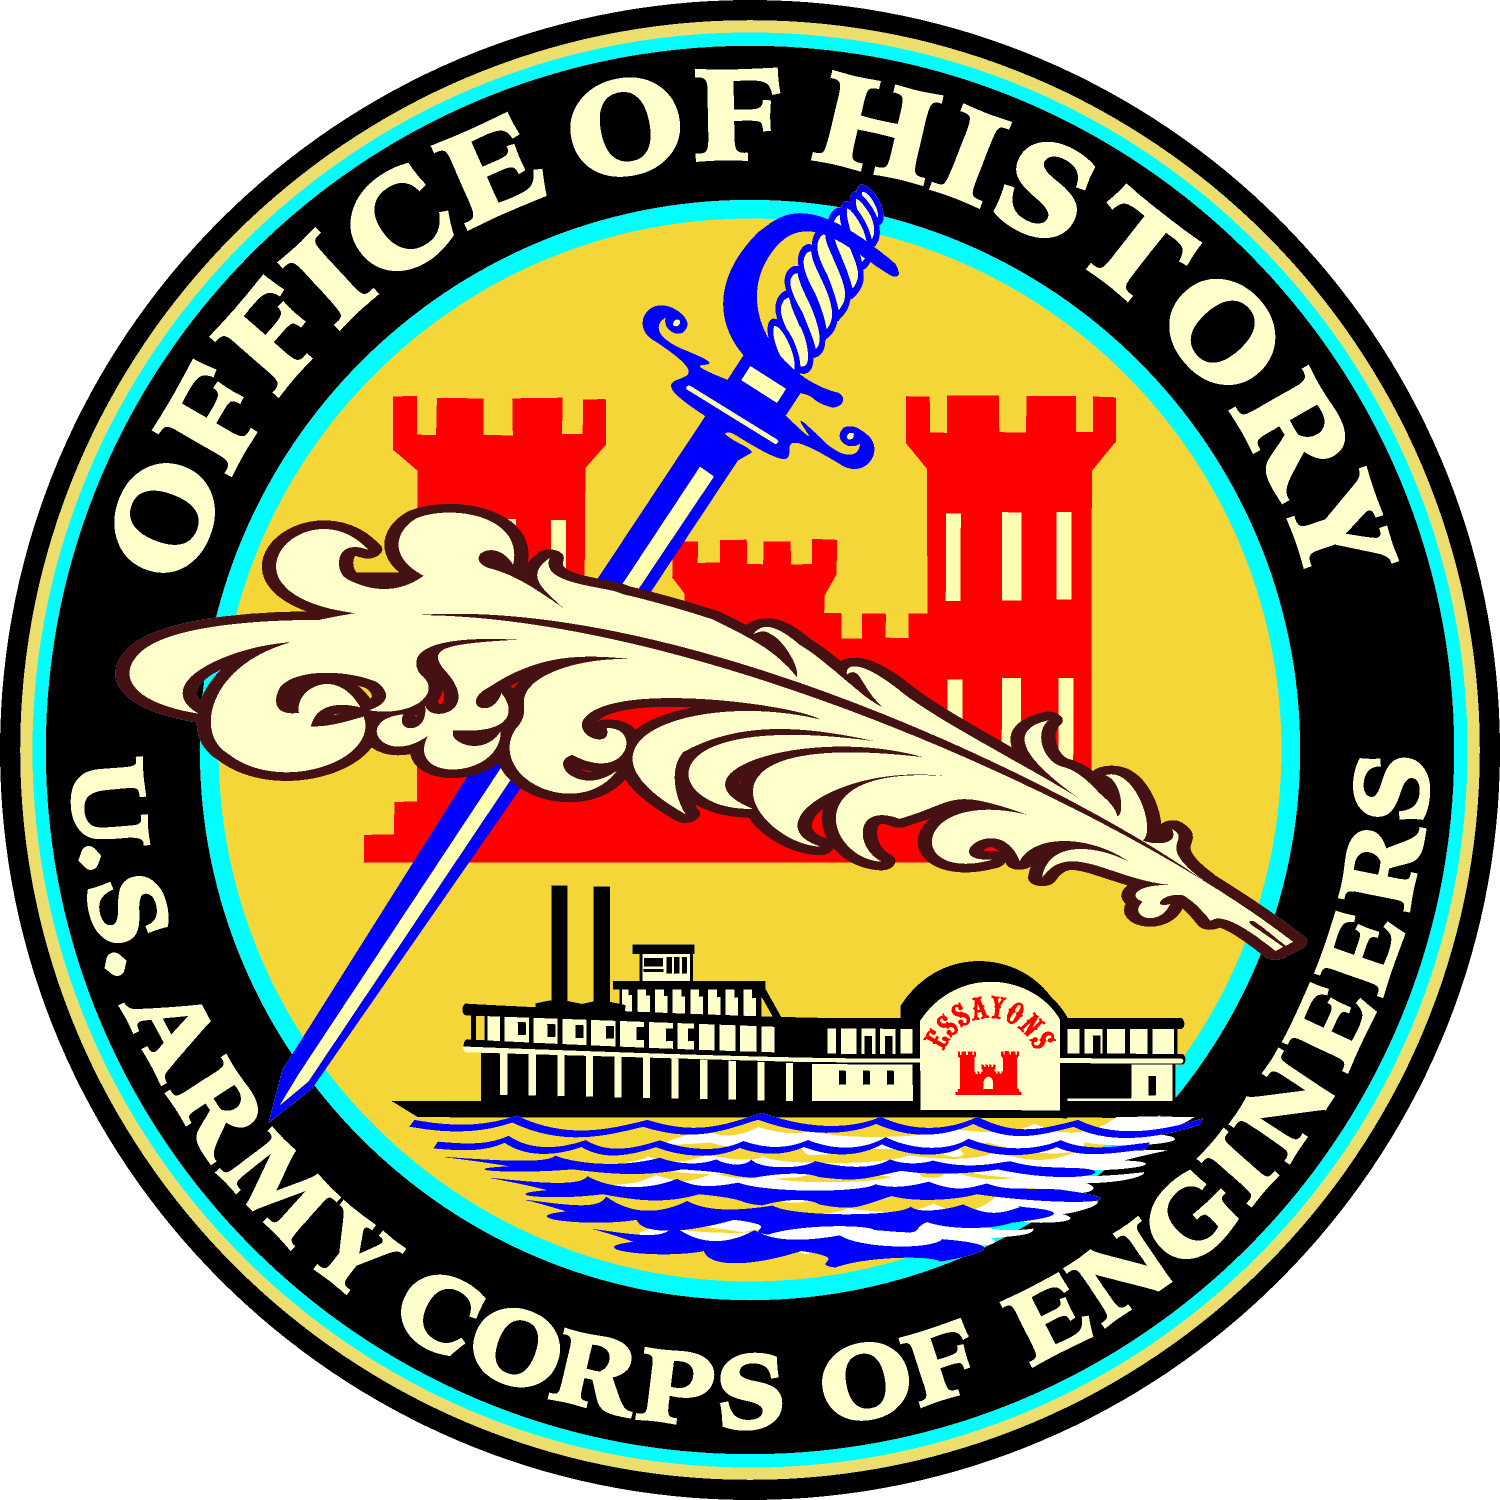 Office of History seal